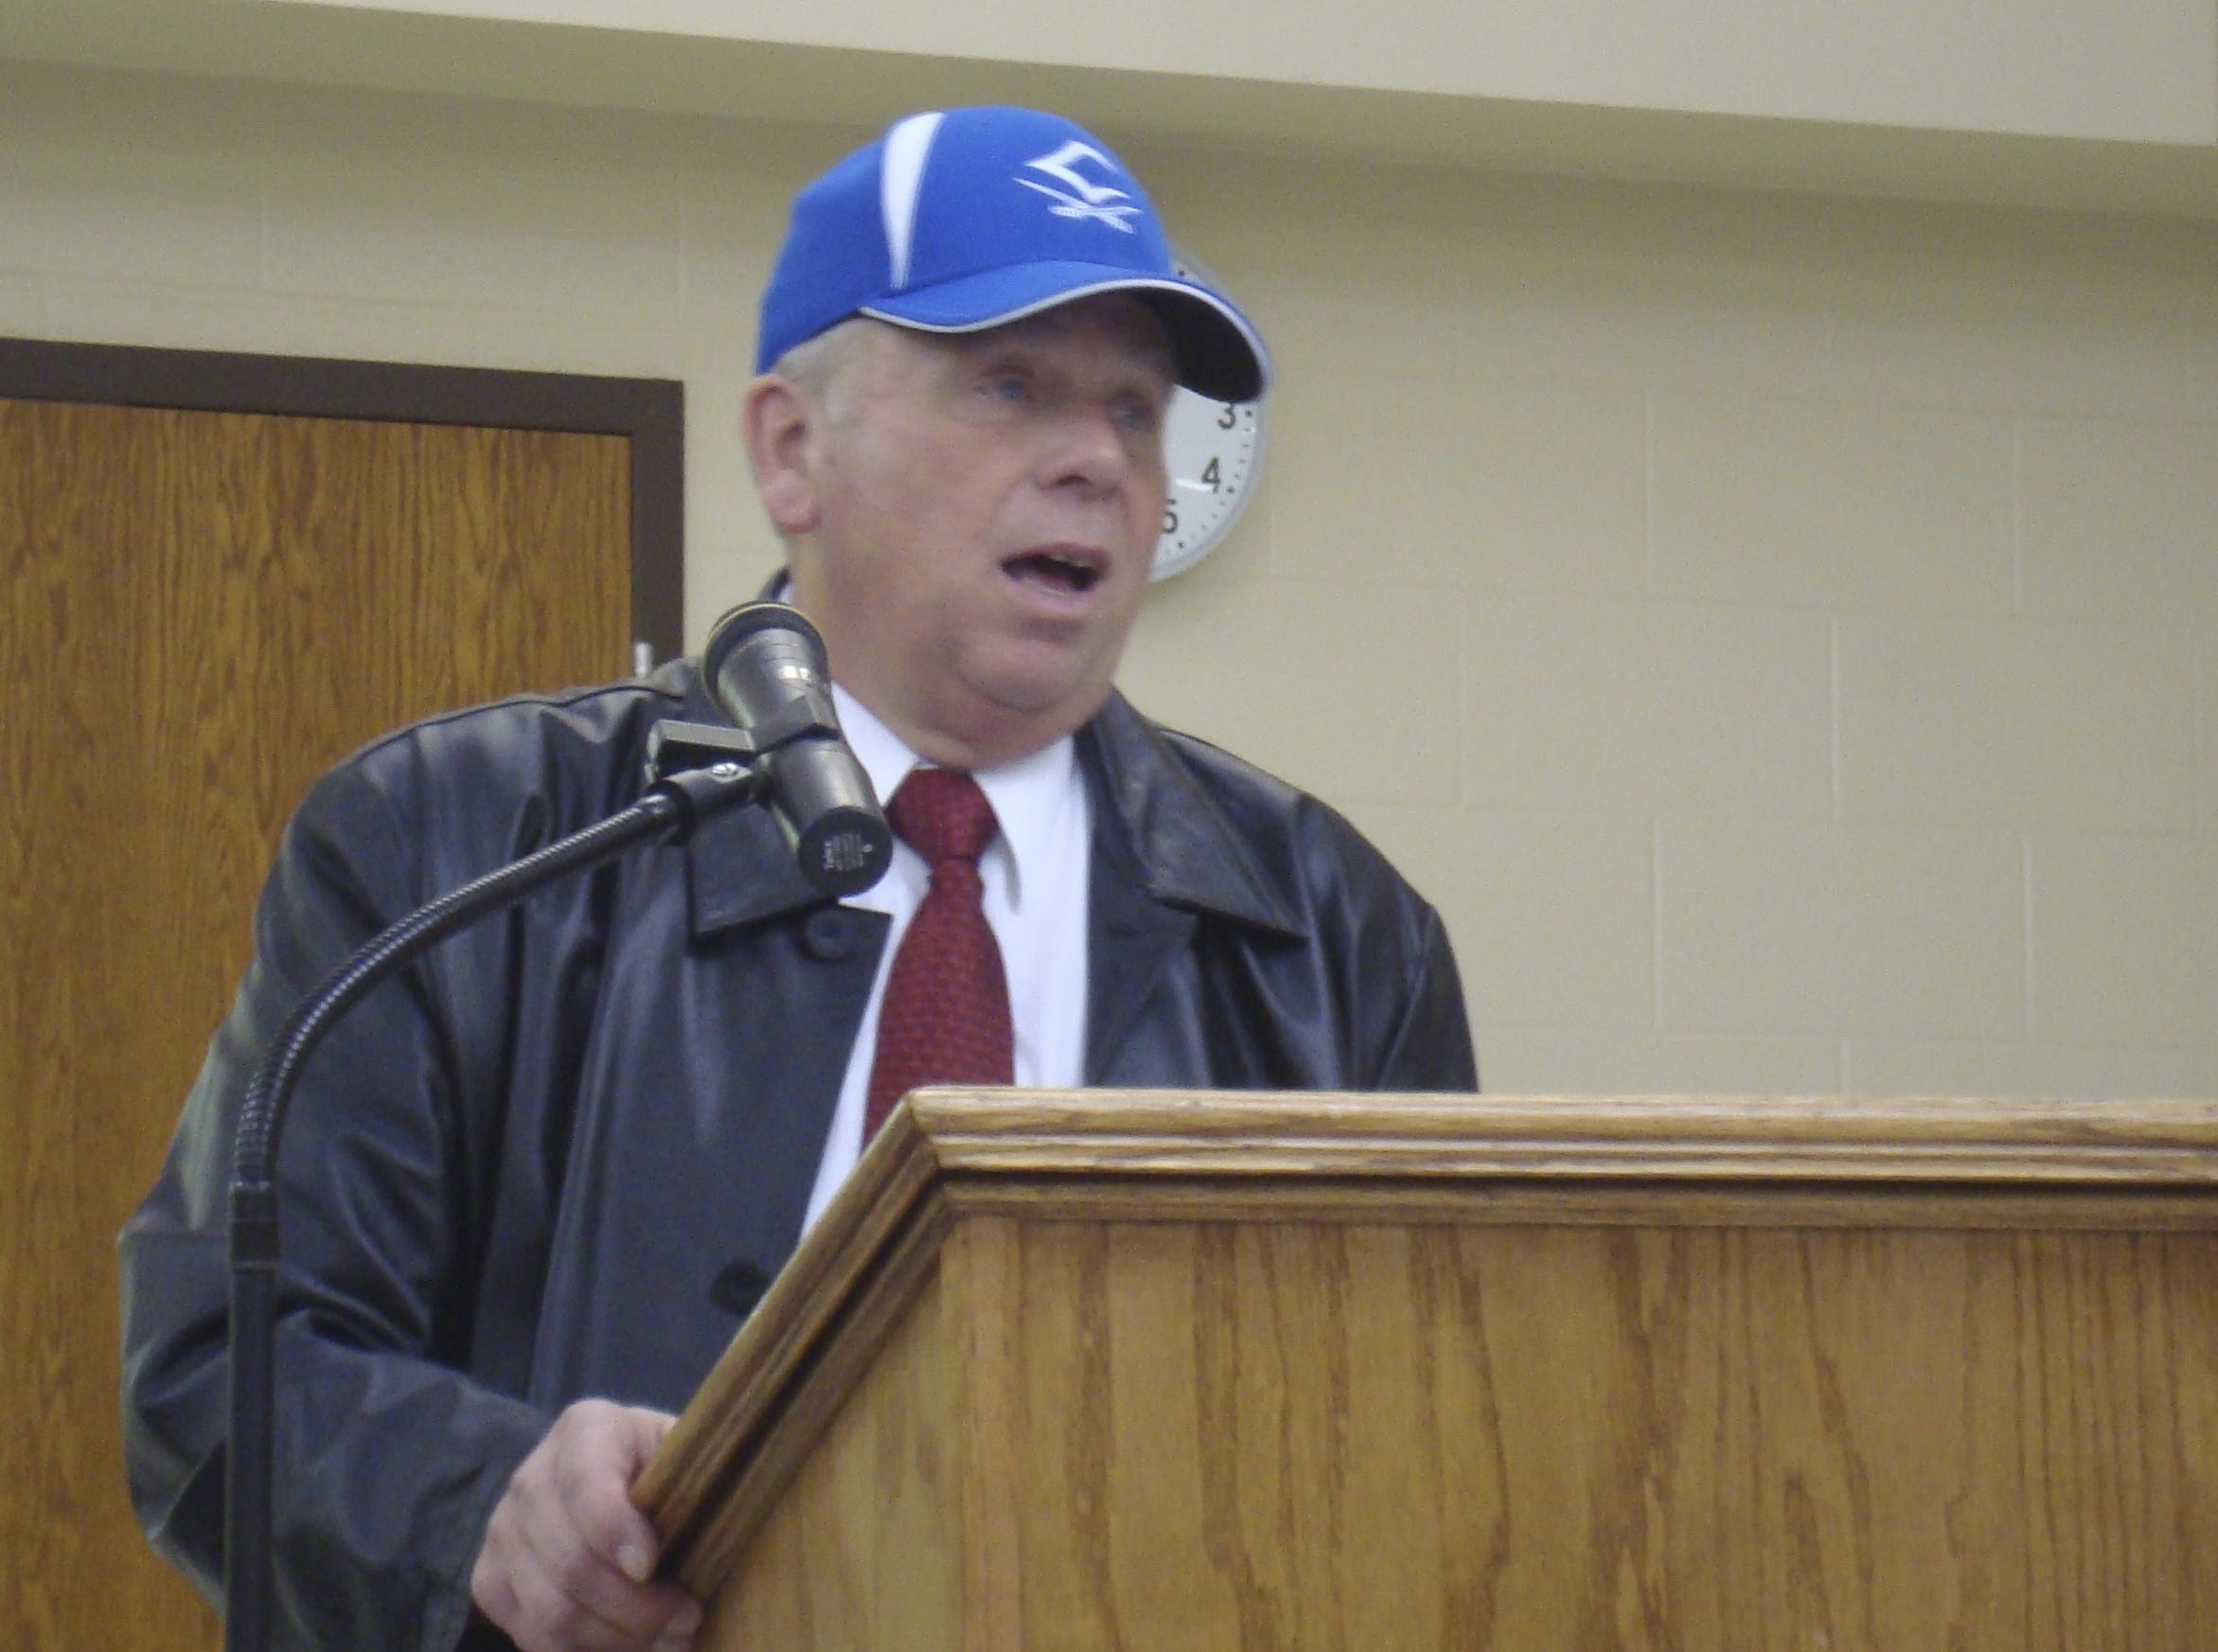 Chillicothe Head Football Coach Ron Hinton speaks briefly at a school board meeting Monday. Hinton was just approved as the new head coach.